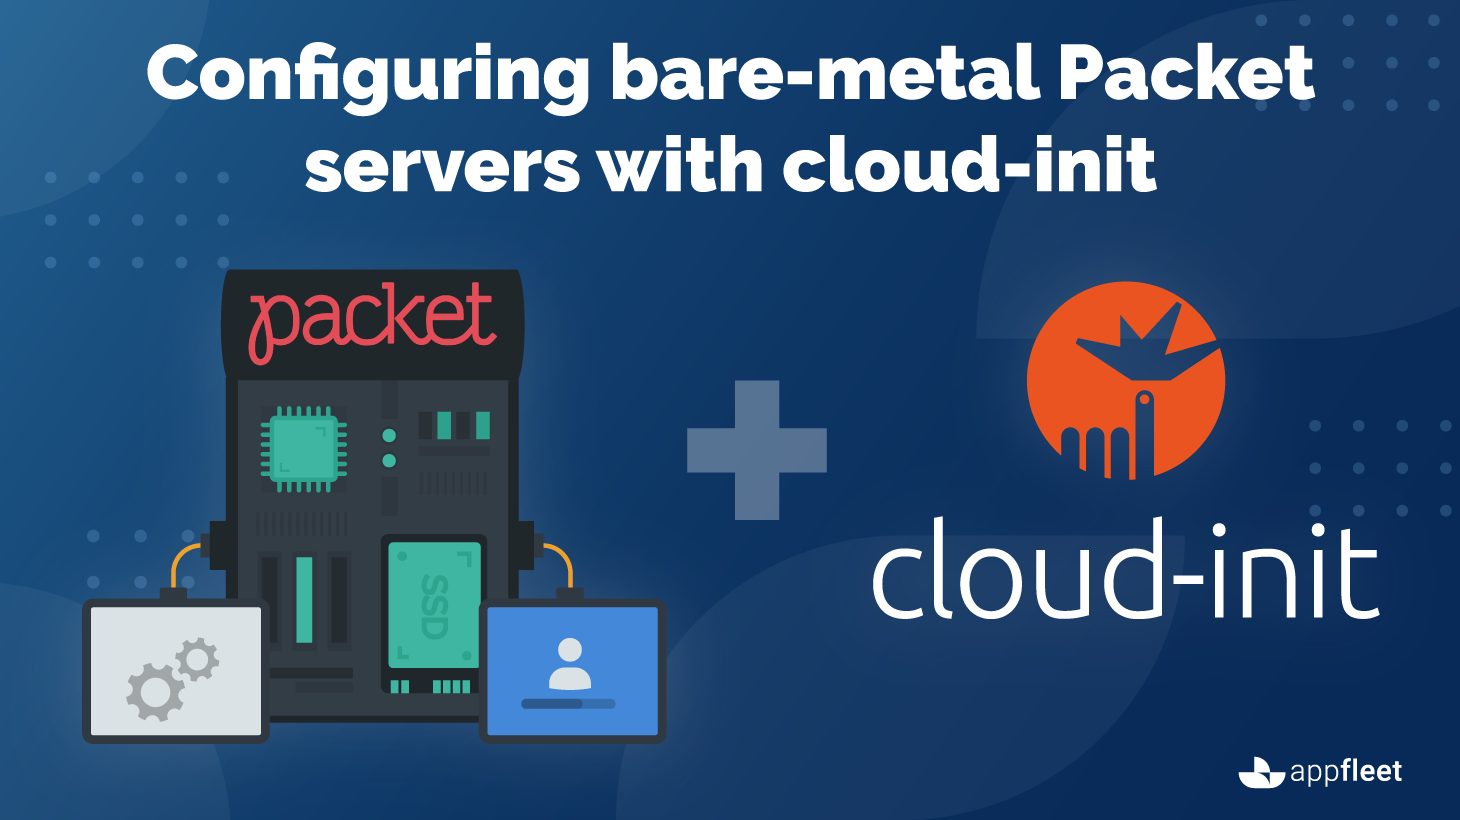 Configuring bare-metal Packet servers with cloud-init